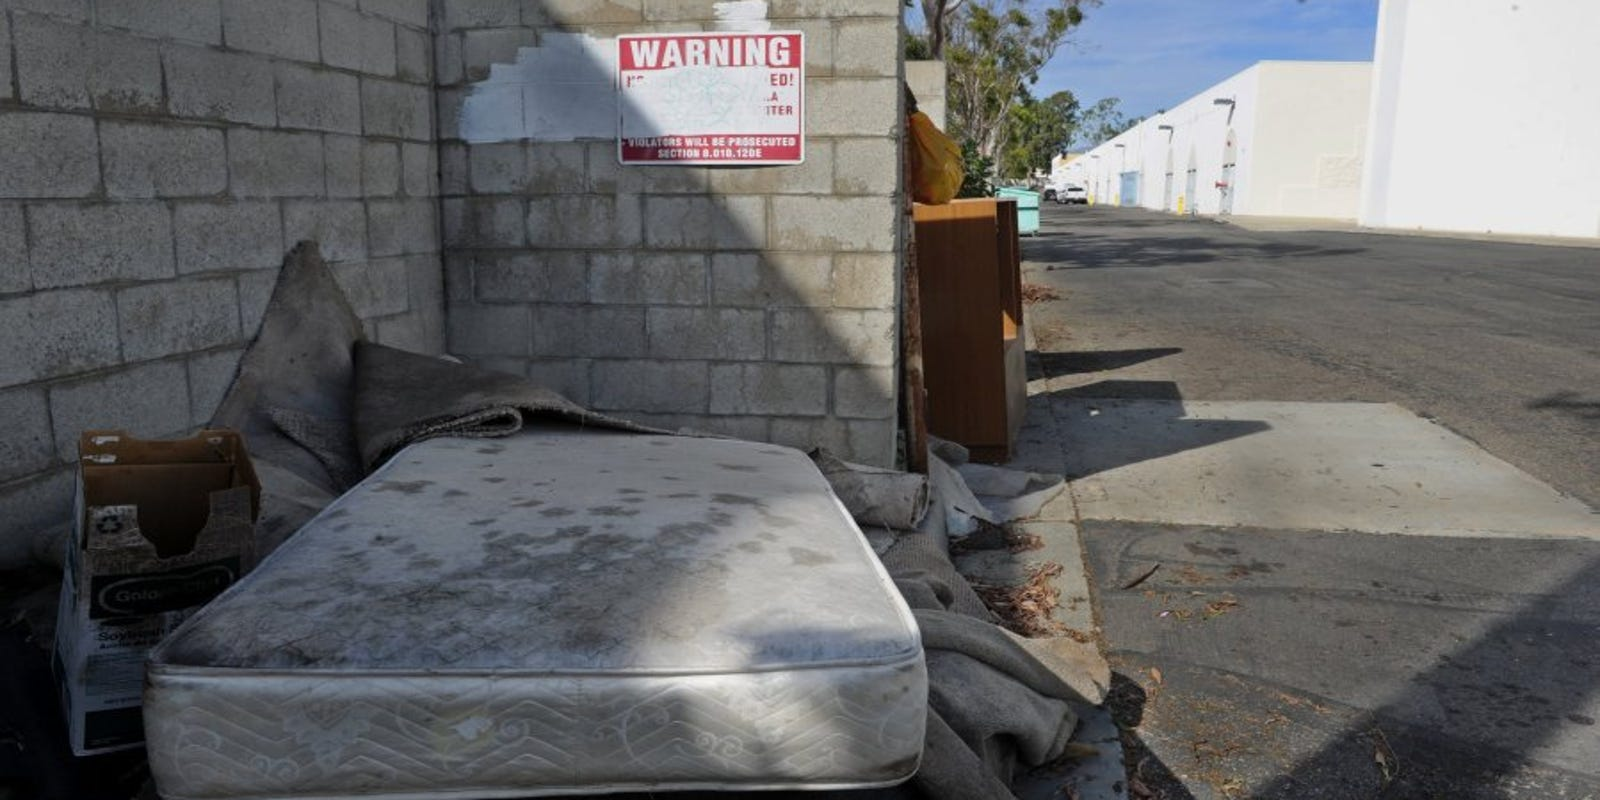 Ventura County residents can now recycle used mattresses for ...